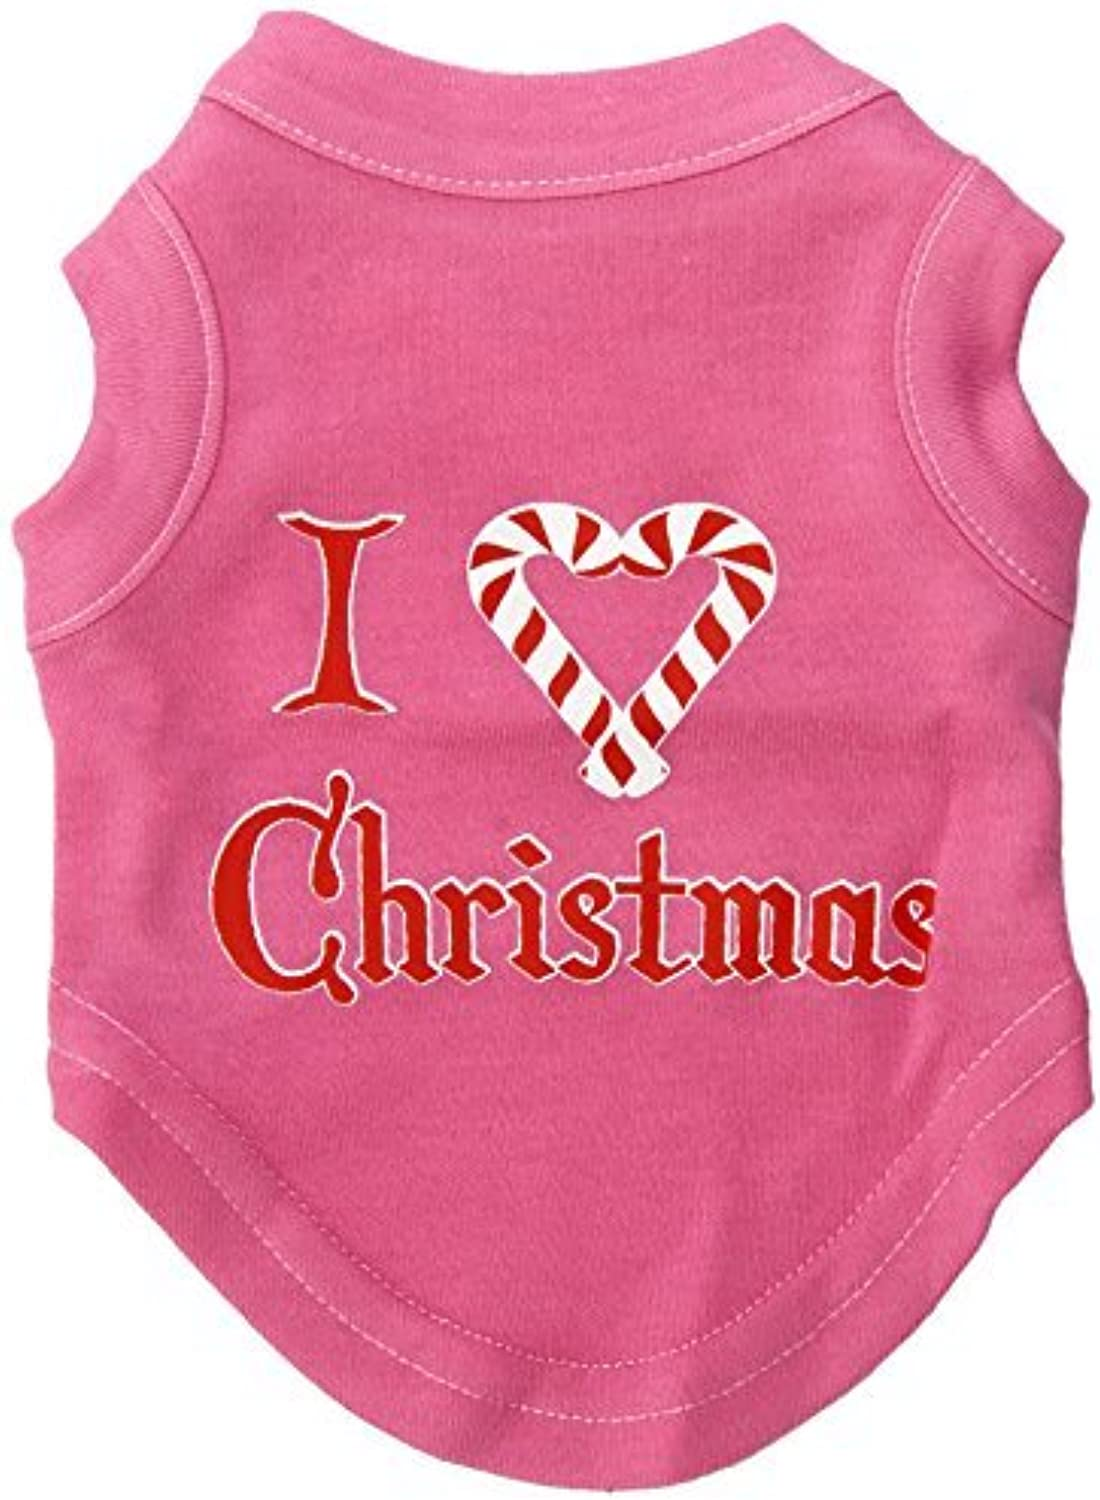 Mirage Pet Products 8Inch I Heart Christmas Screen Print Shirts for Pets, XSmall, Bright Pink by Mirage Pet Products